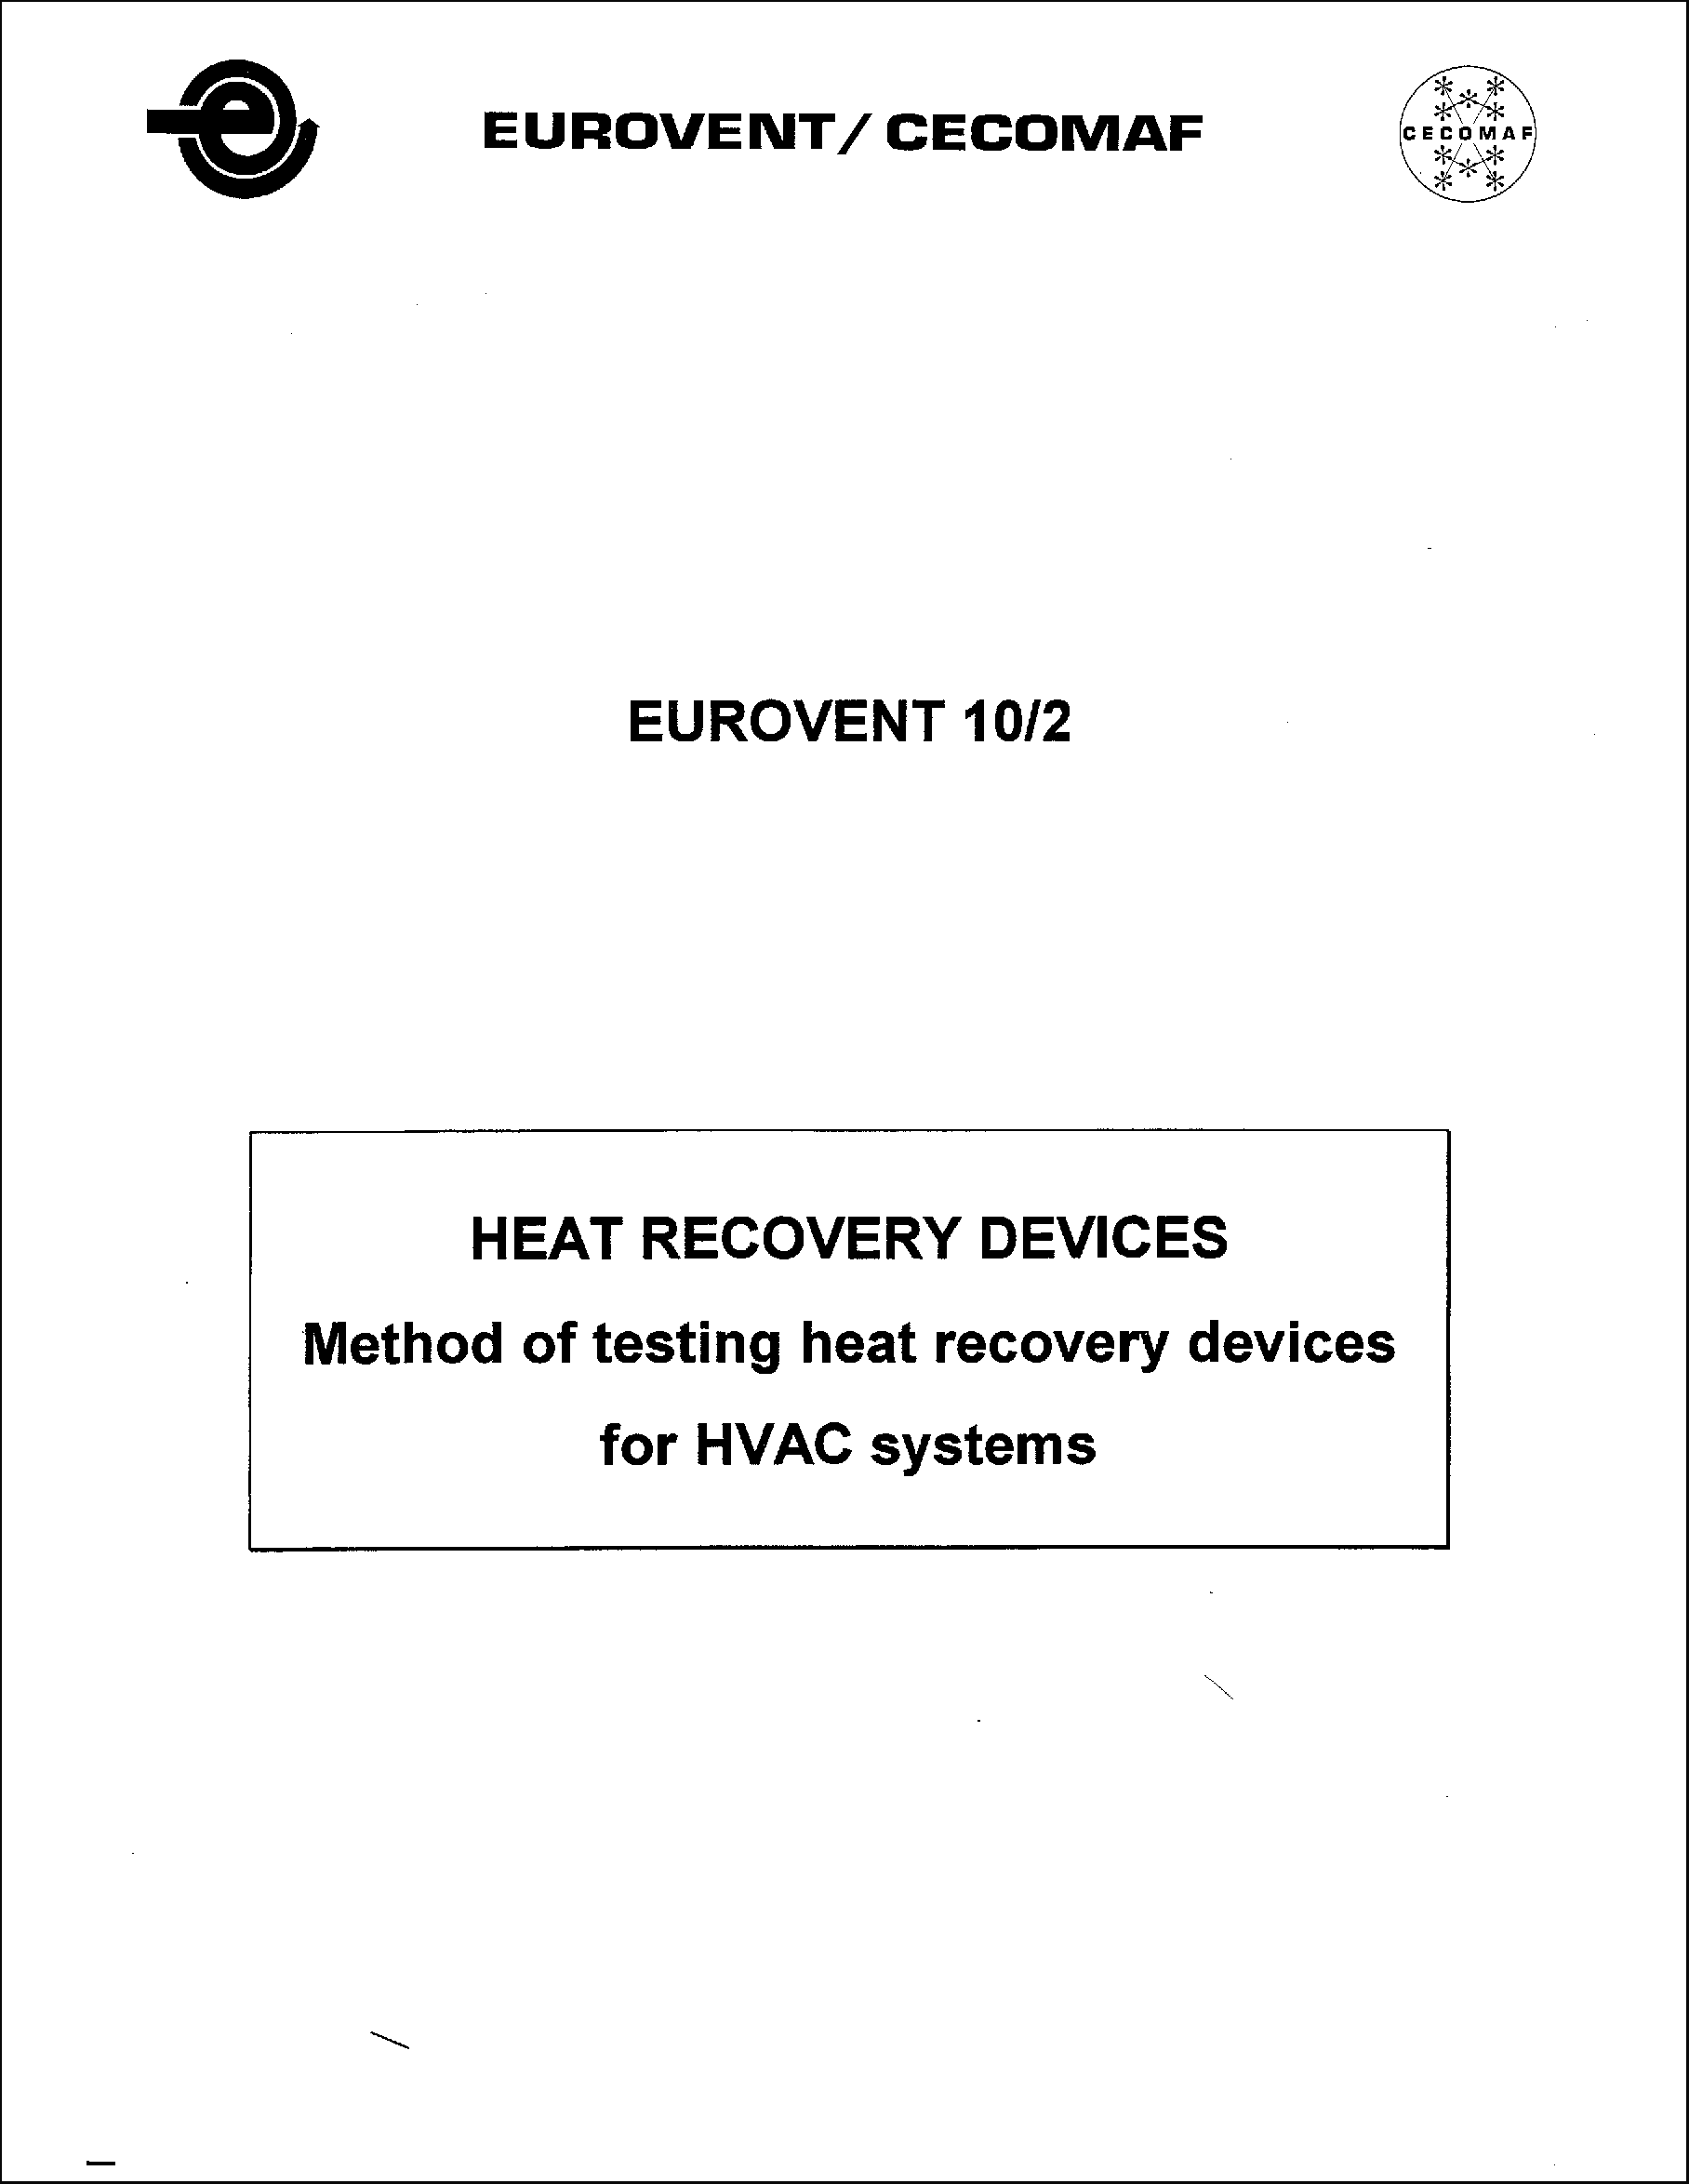 1988 - Heat Recovery Devices: Method of testing heat recovery devices for HVAC systems